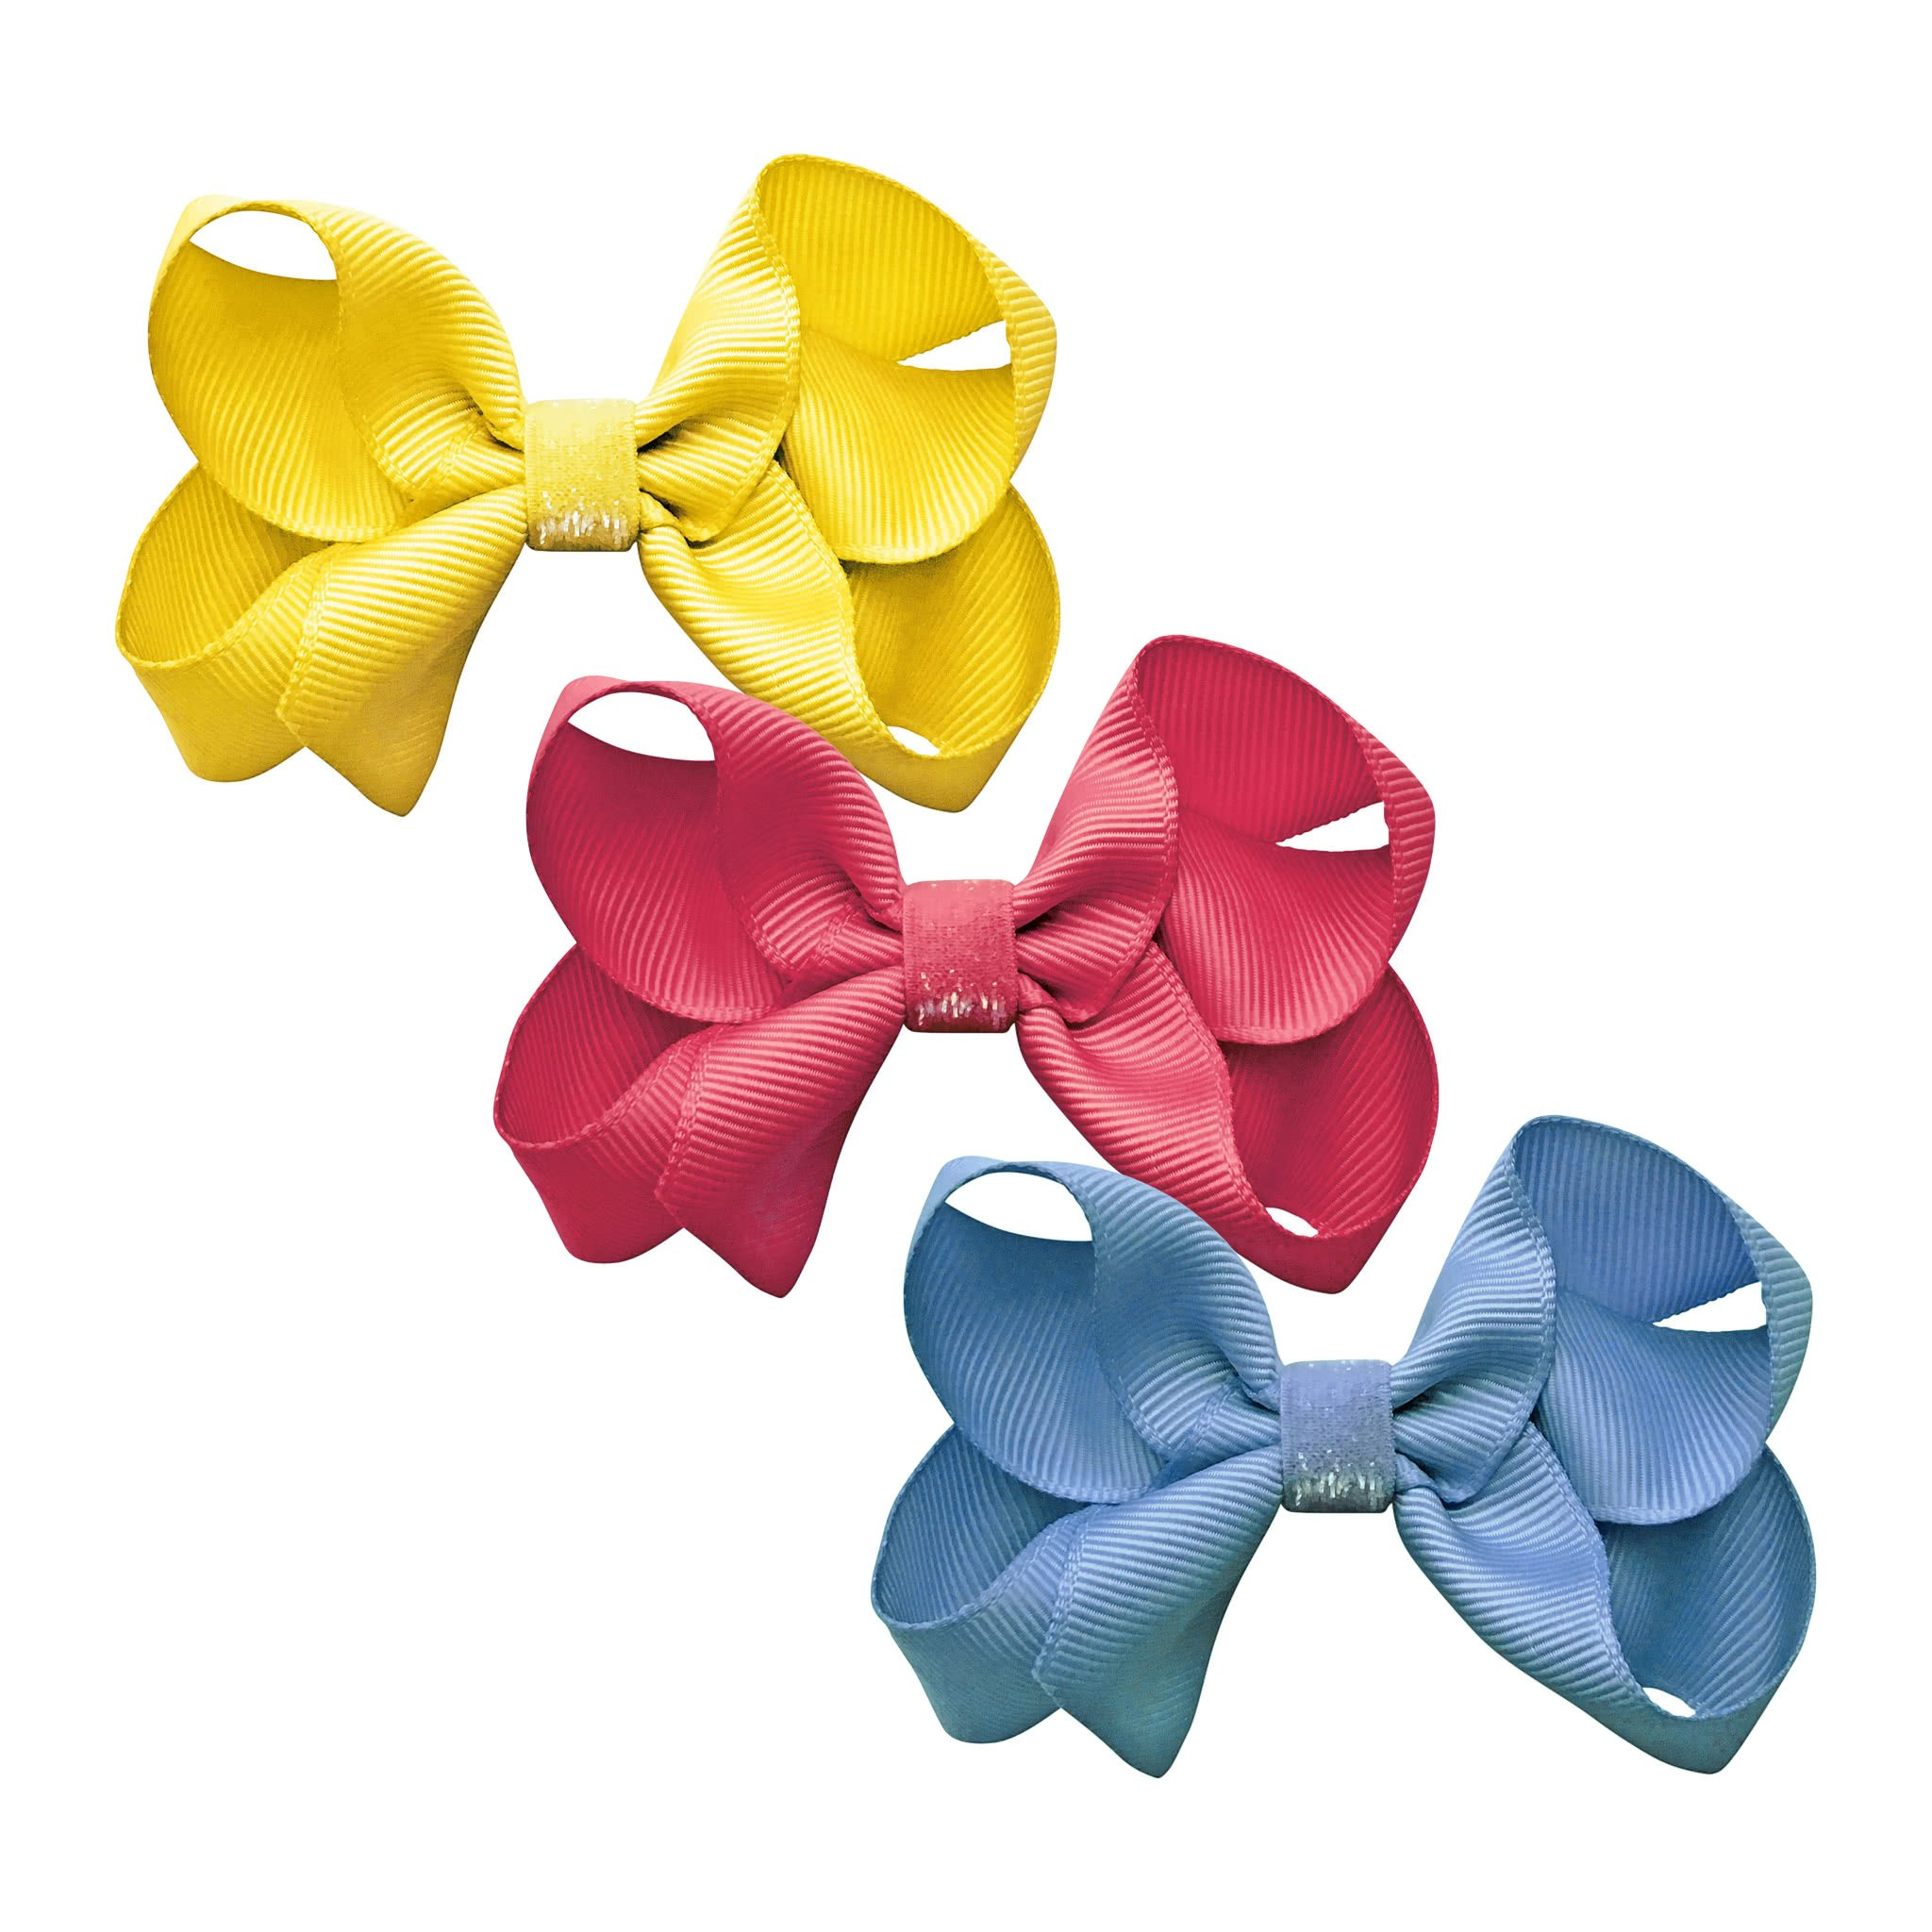 Image of Milledeux® gift set - Colored Glitter Collection - 3 Medium boutique bows - yellow/pink/blue